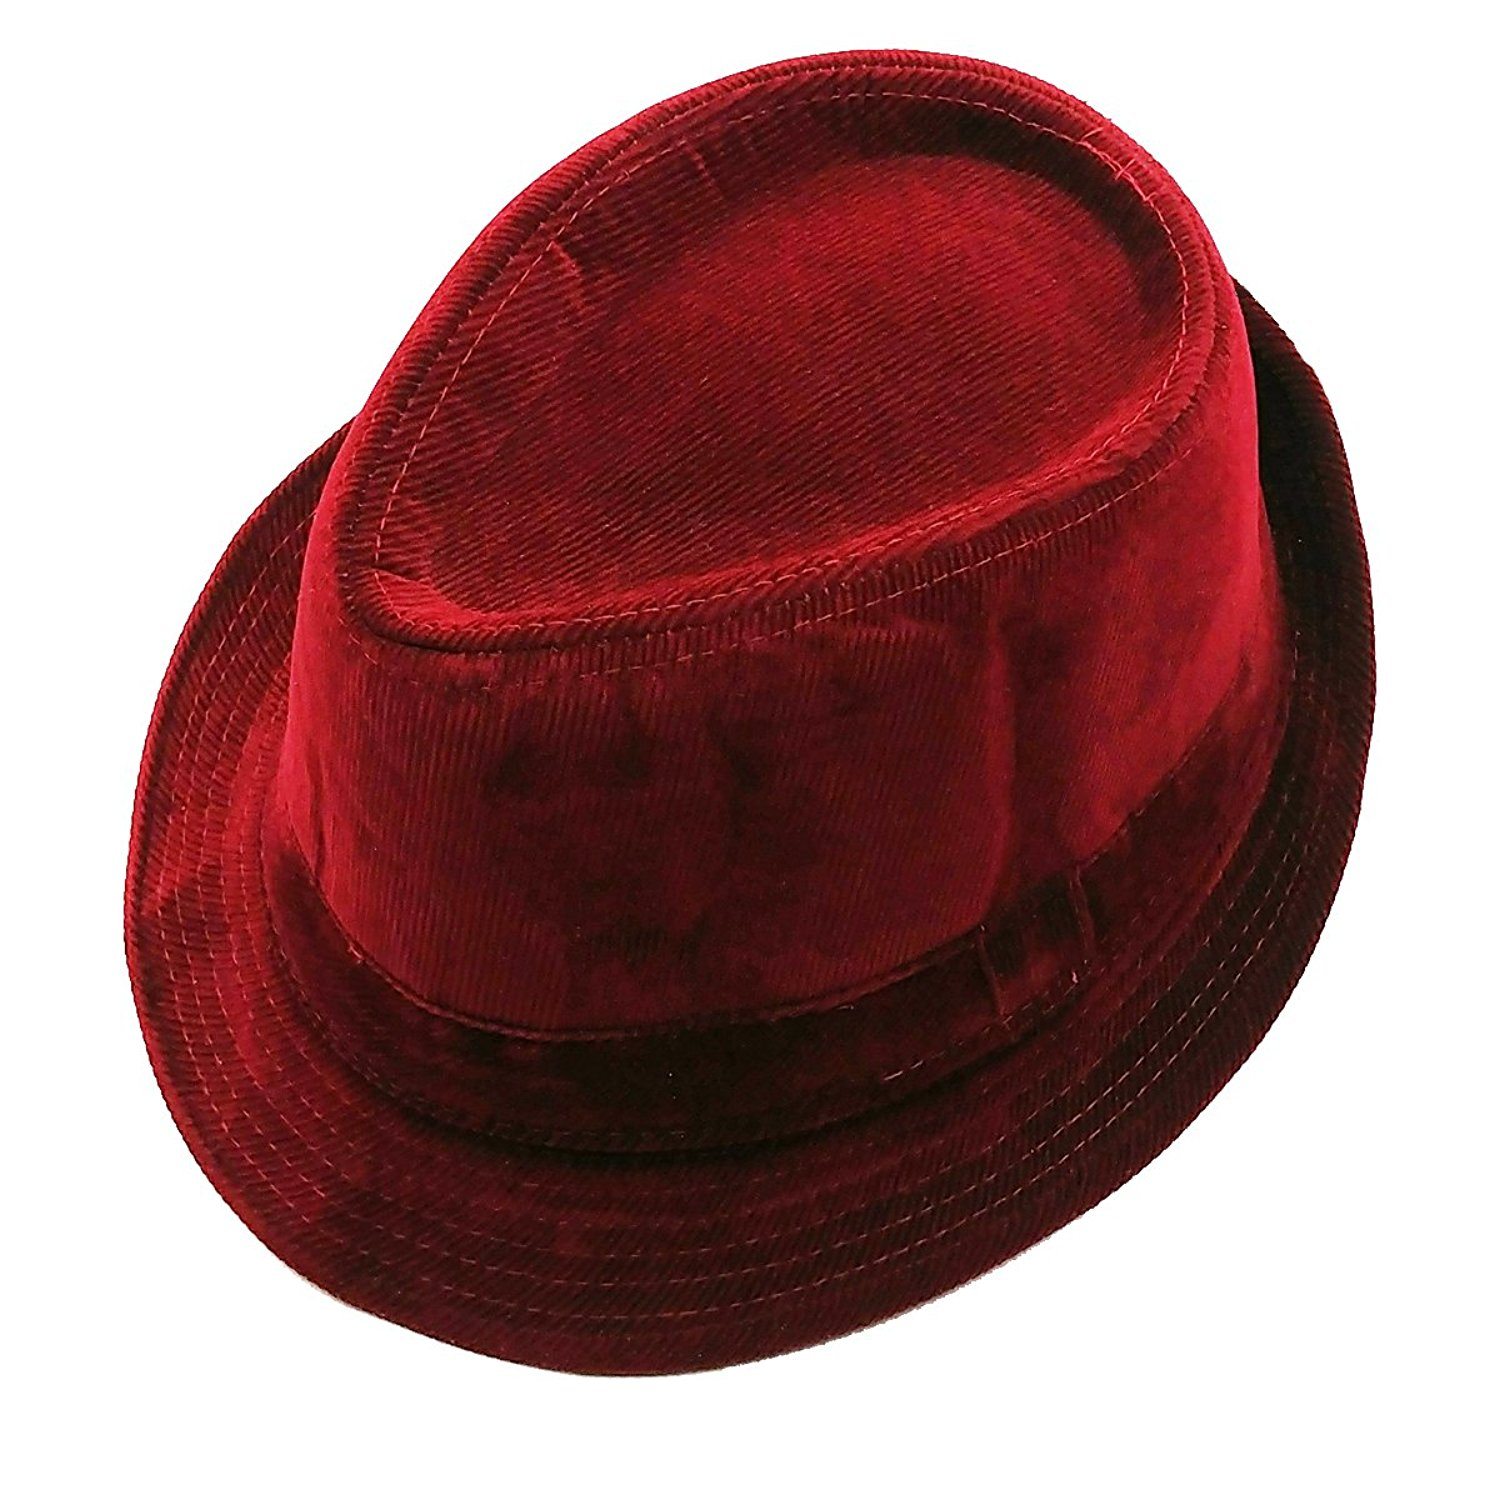 dd062fa1198035 Get Quotations · List A Mens Velvet Fedora Hat Selections - Stylish Smooth  Trilby Panama Hats